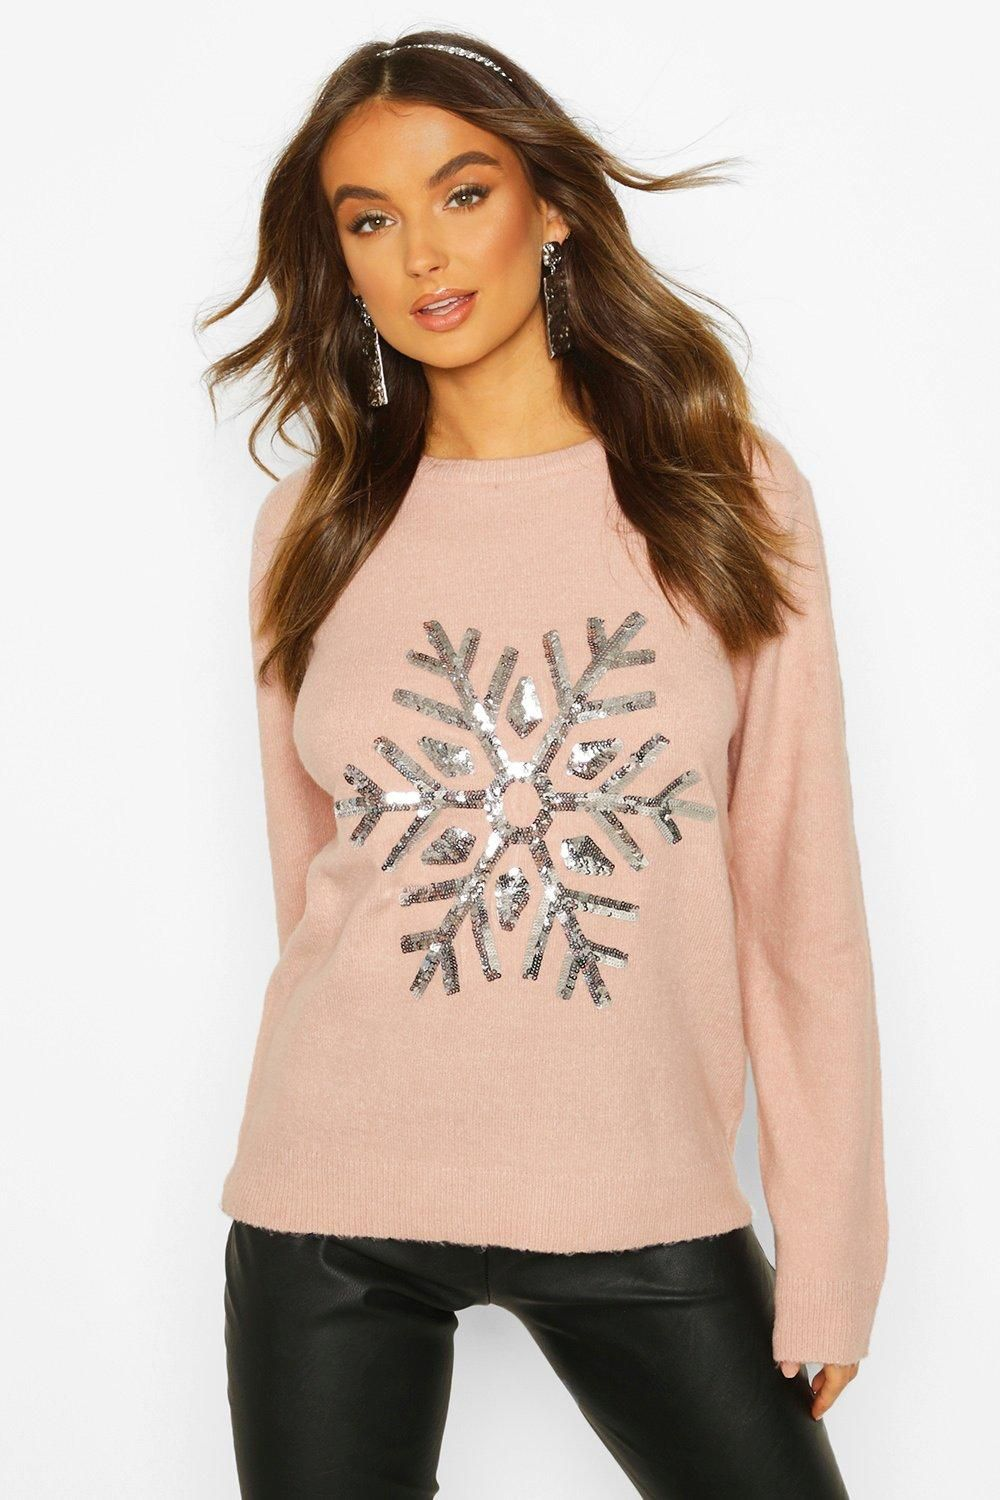 Snowflake Christmas Sweater boohoo in 2020 Christmas